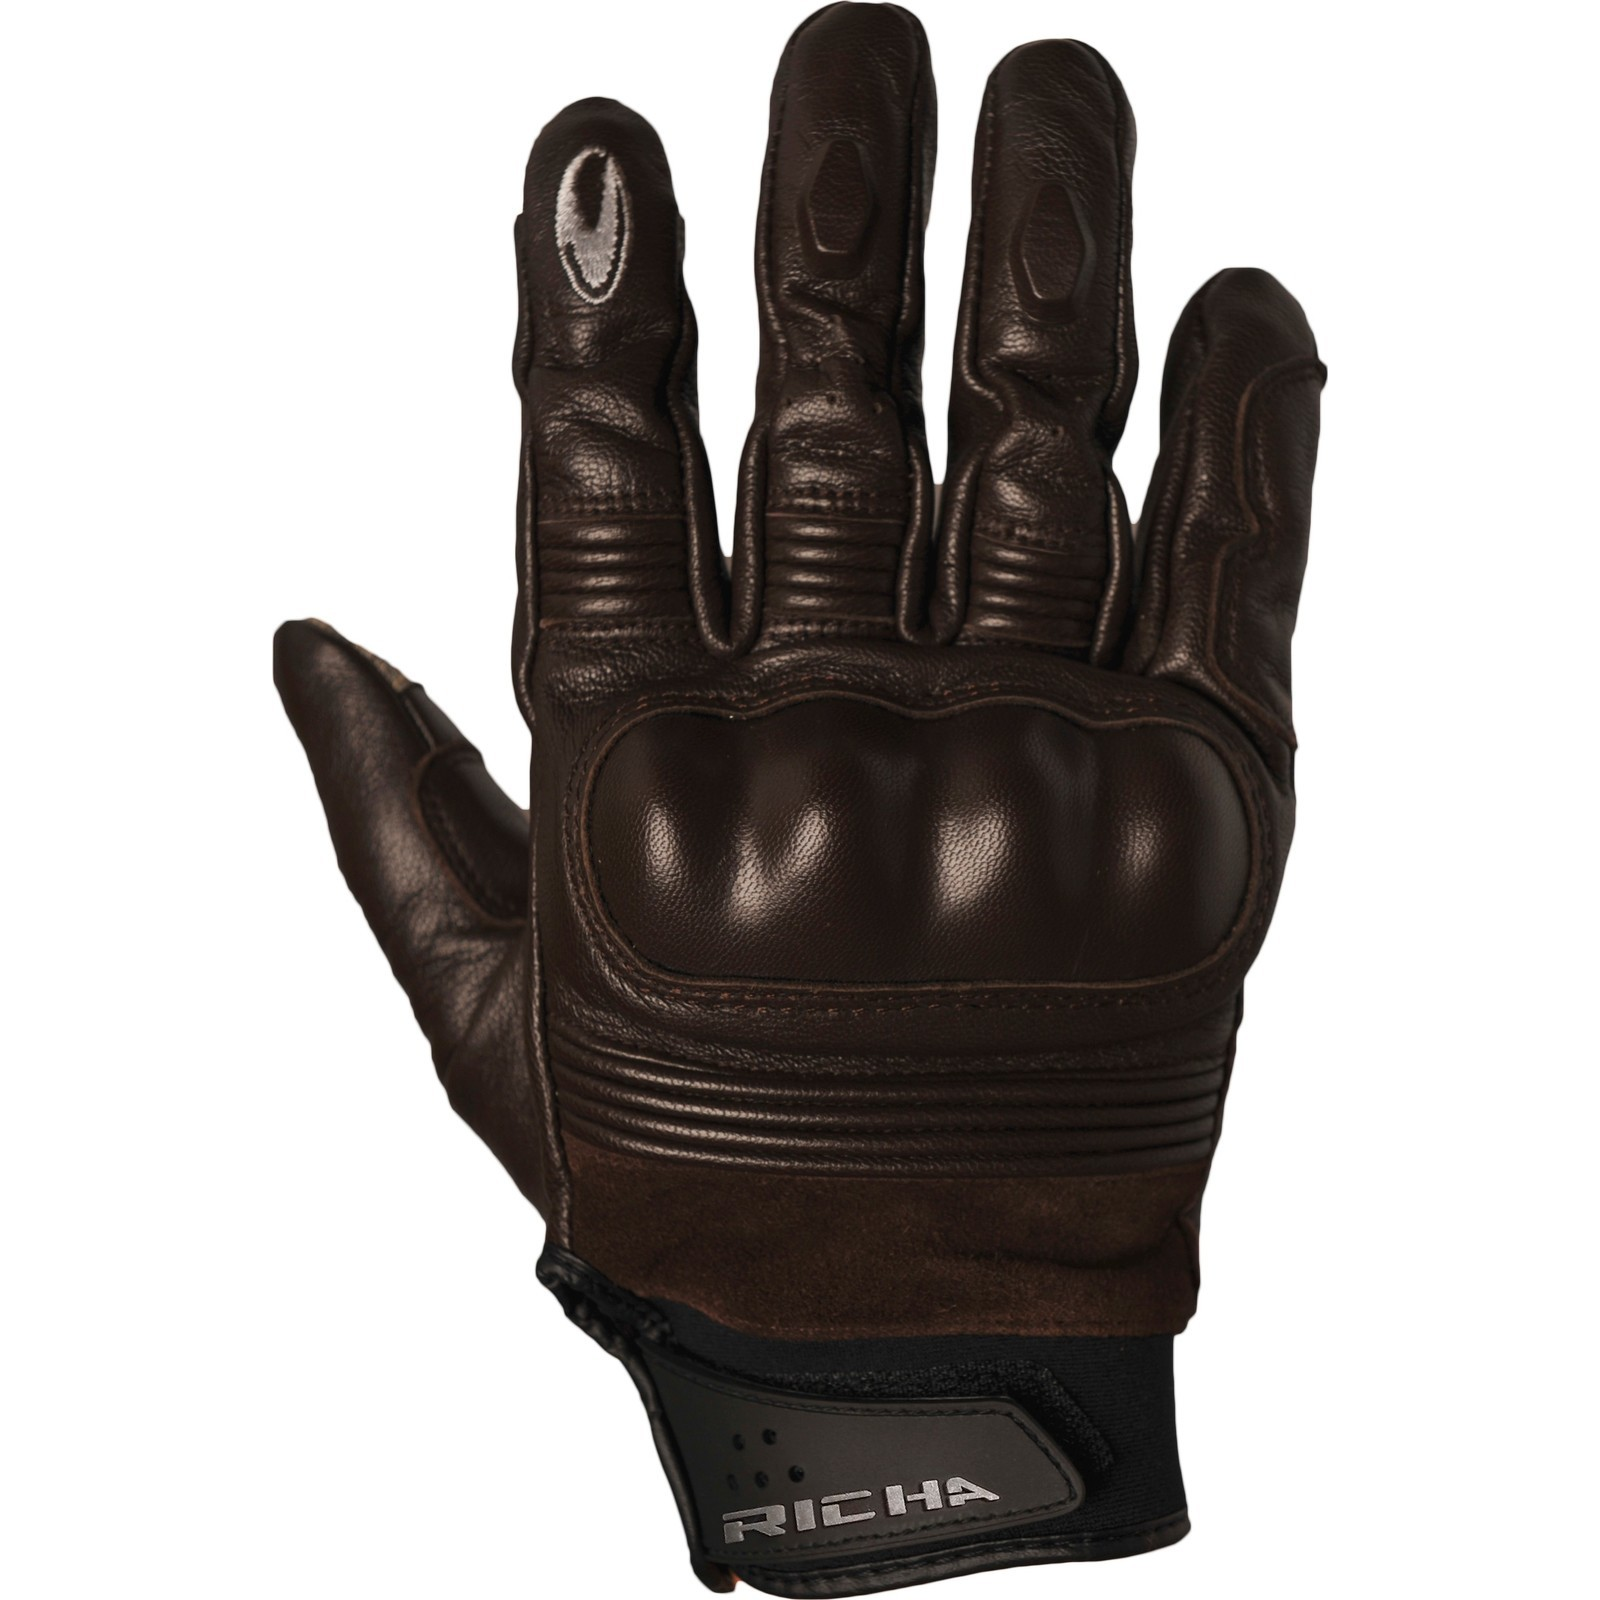 Motorcycle gloves richa - Richa Cordoba Motorcycle Gloves Leather Textile Vintage Ce